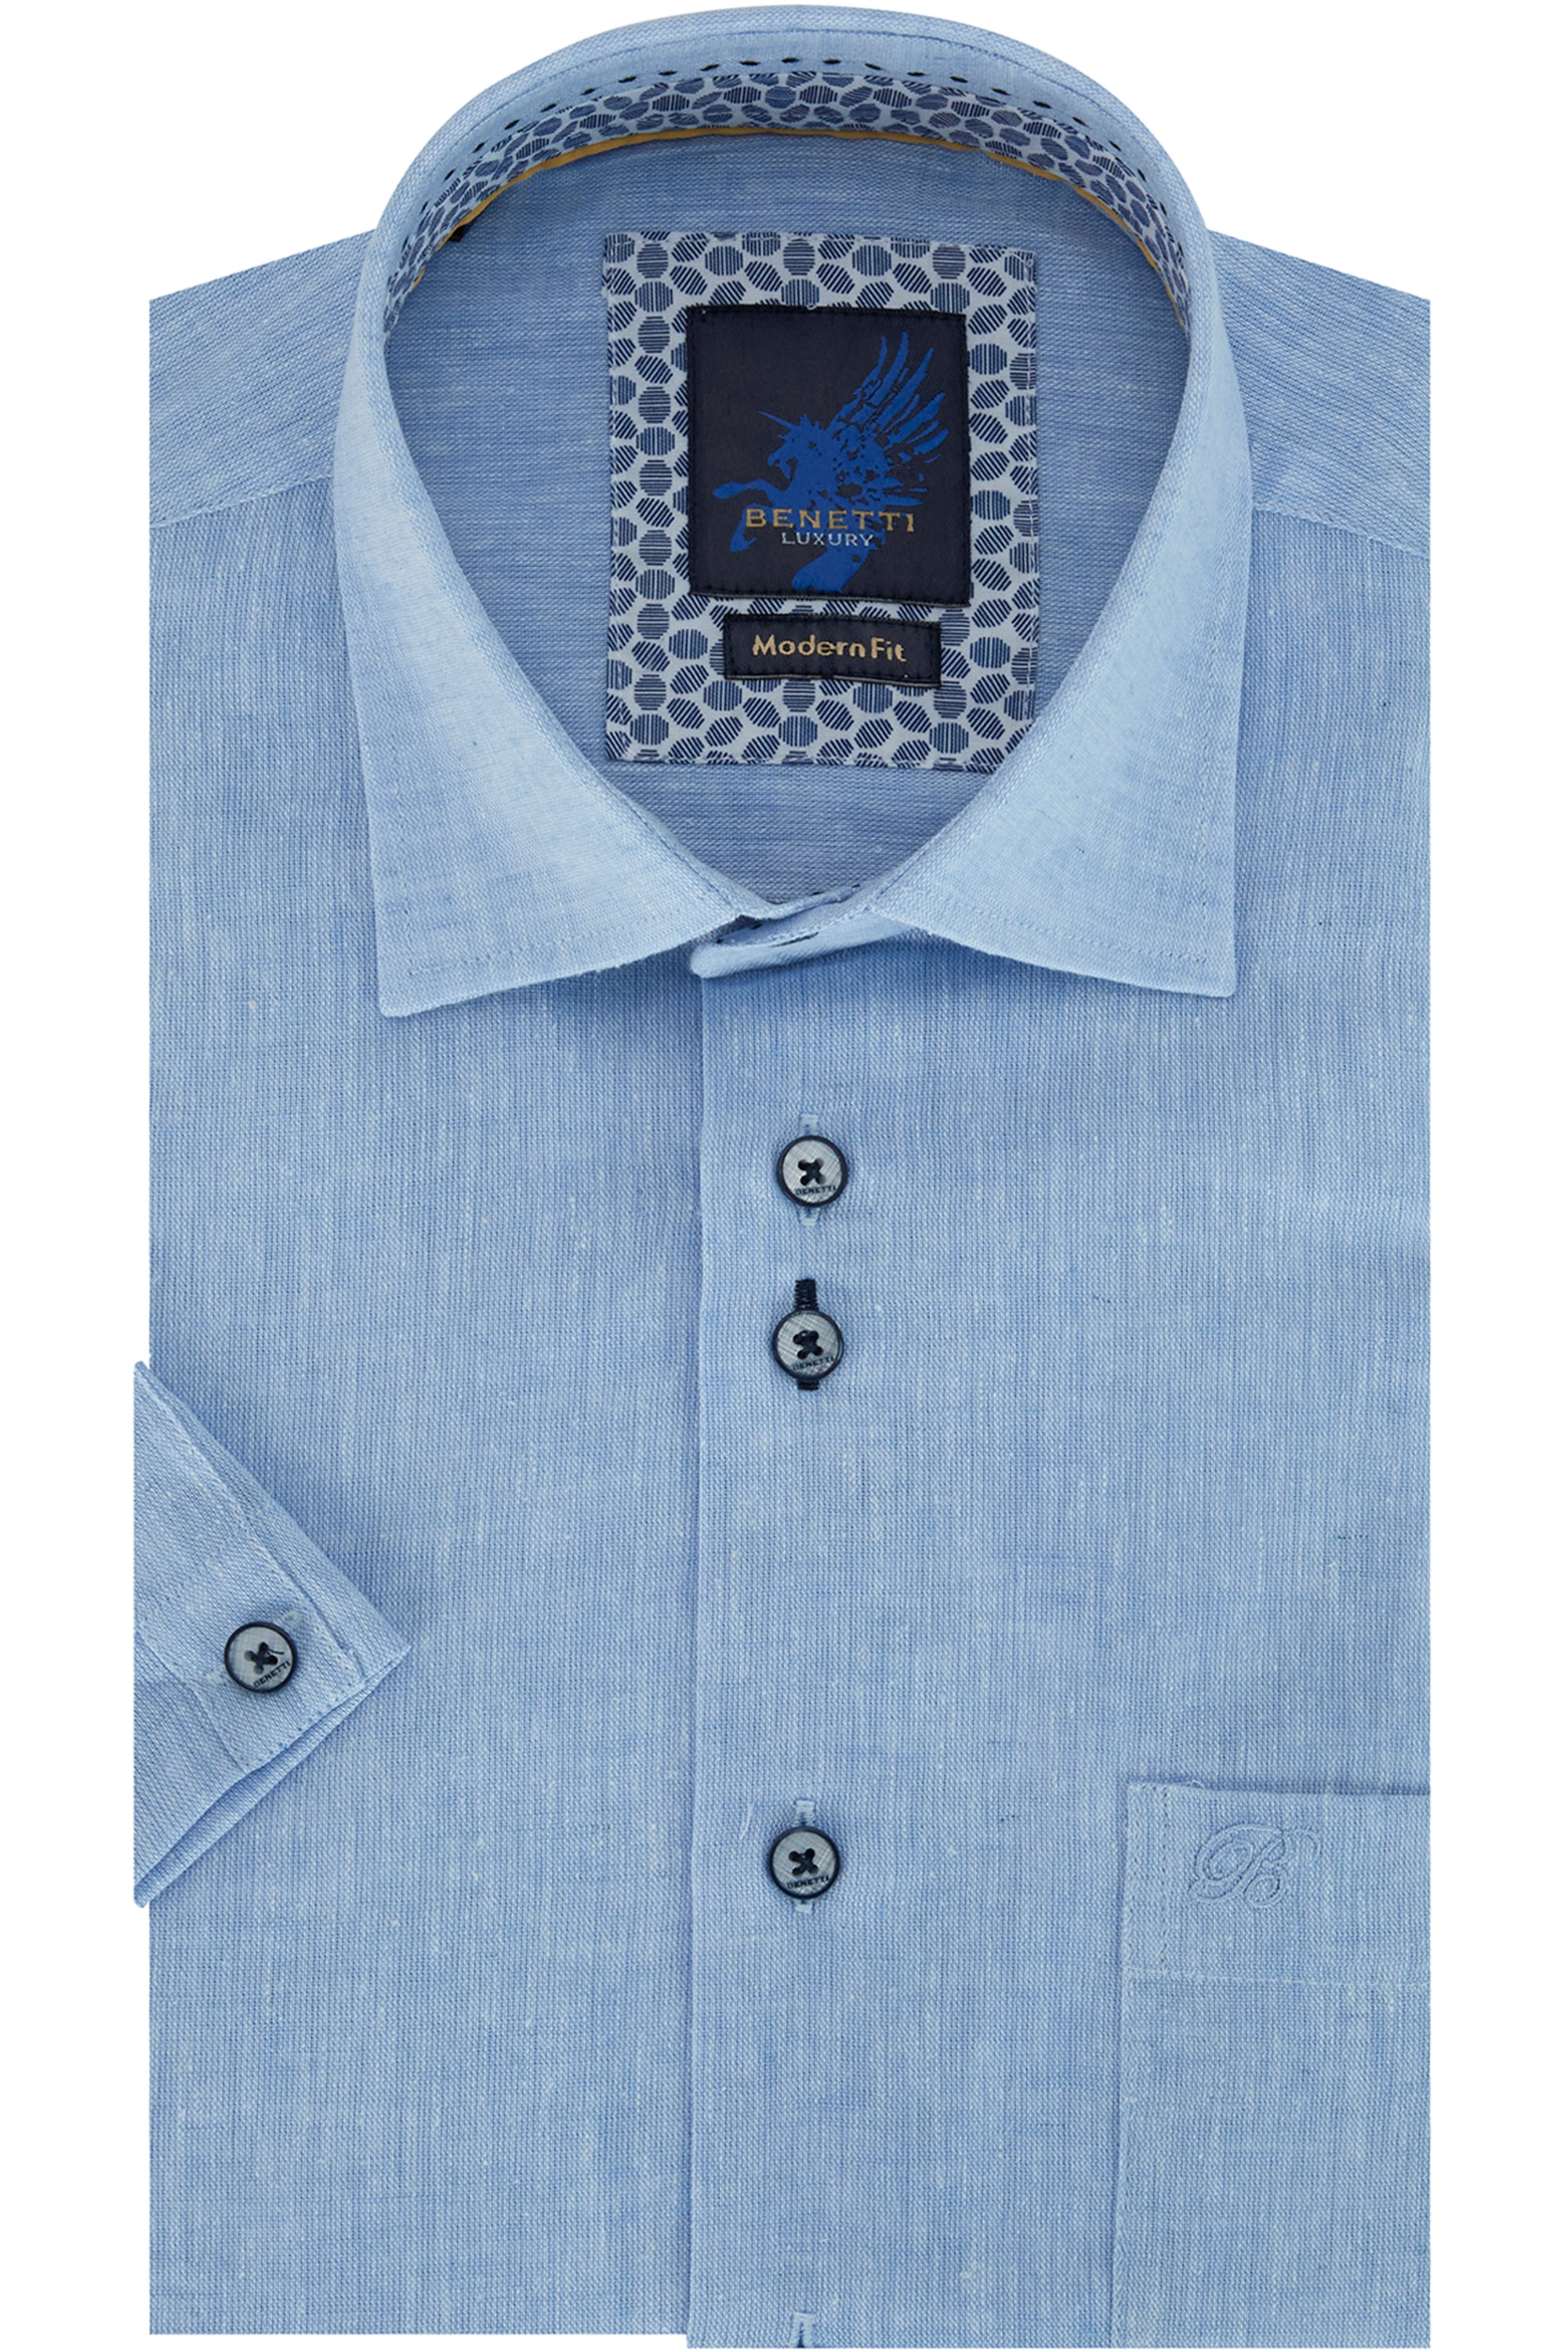 Benetti Blue Short Sleeve Shirt